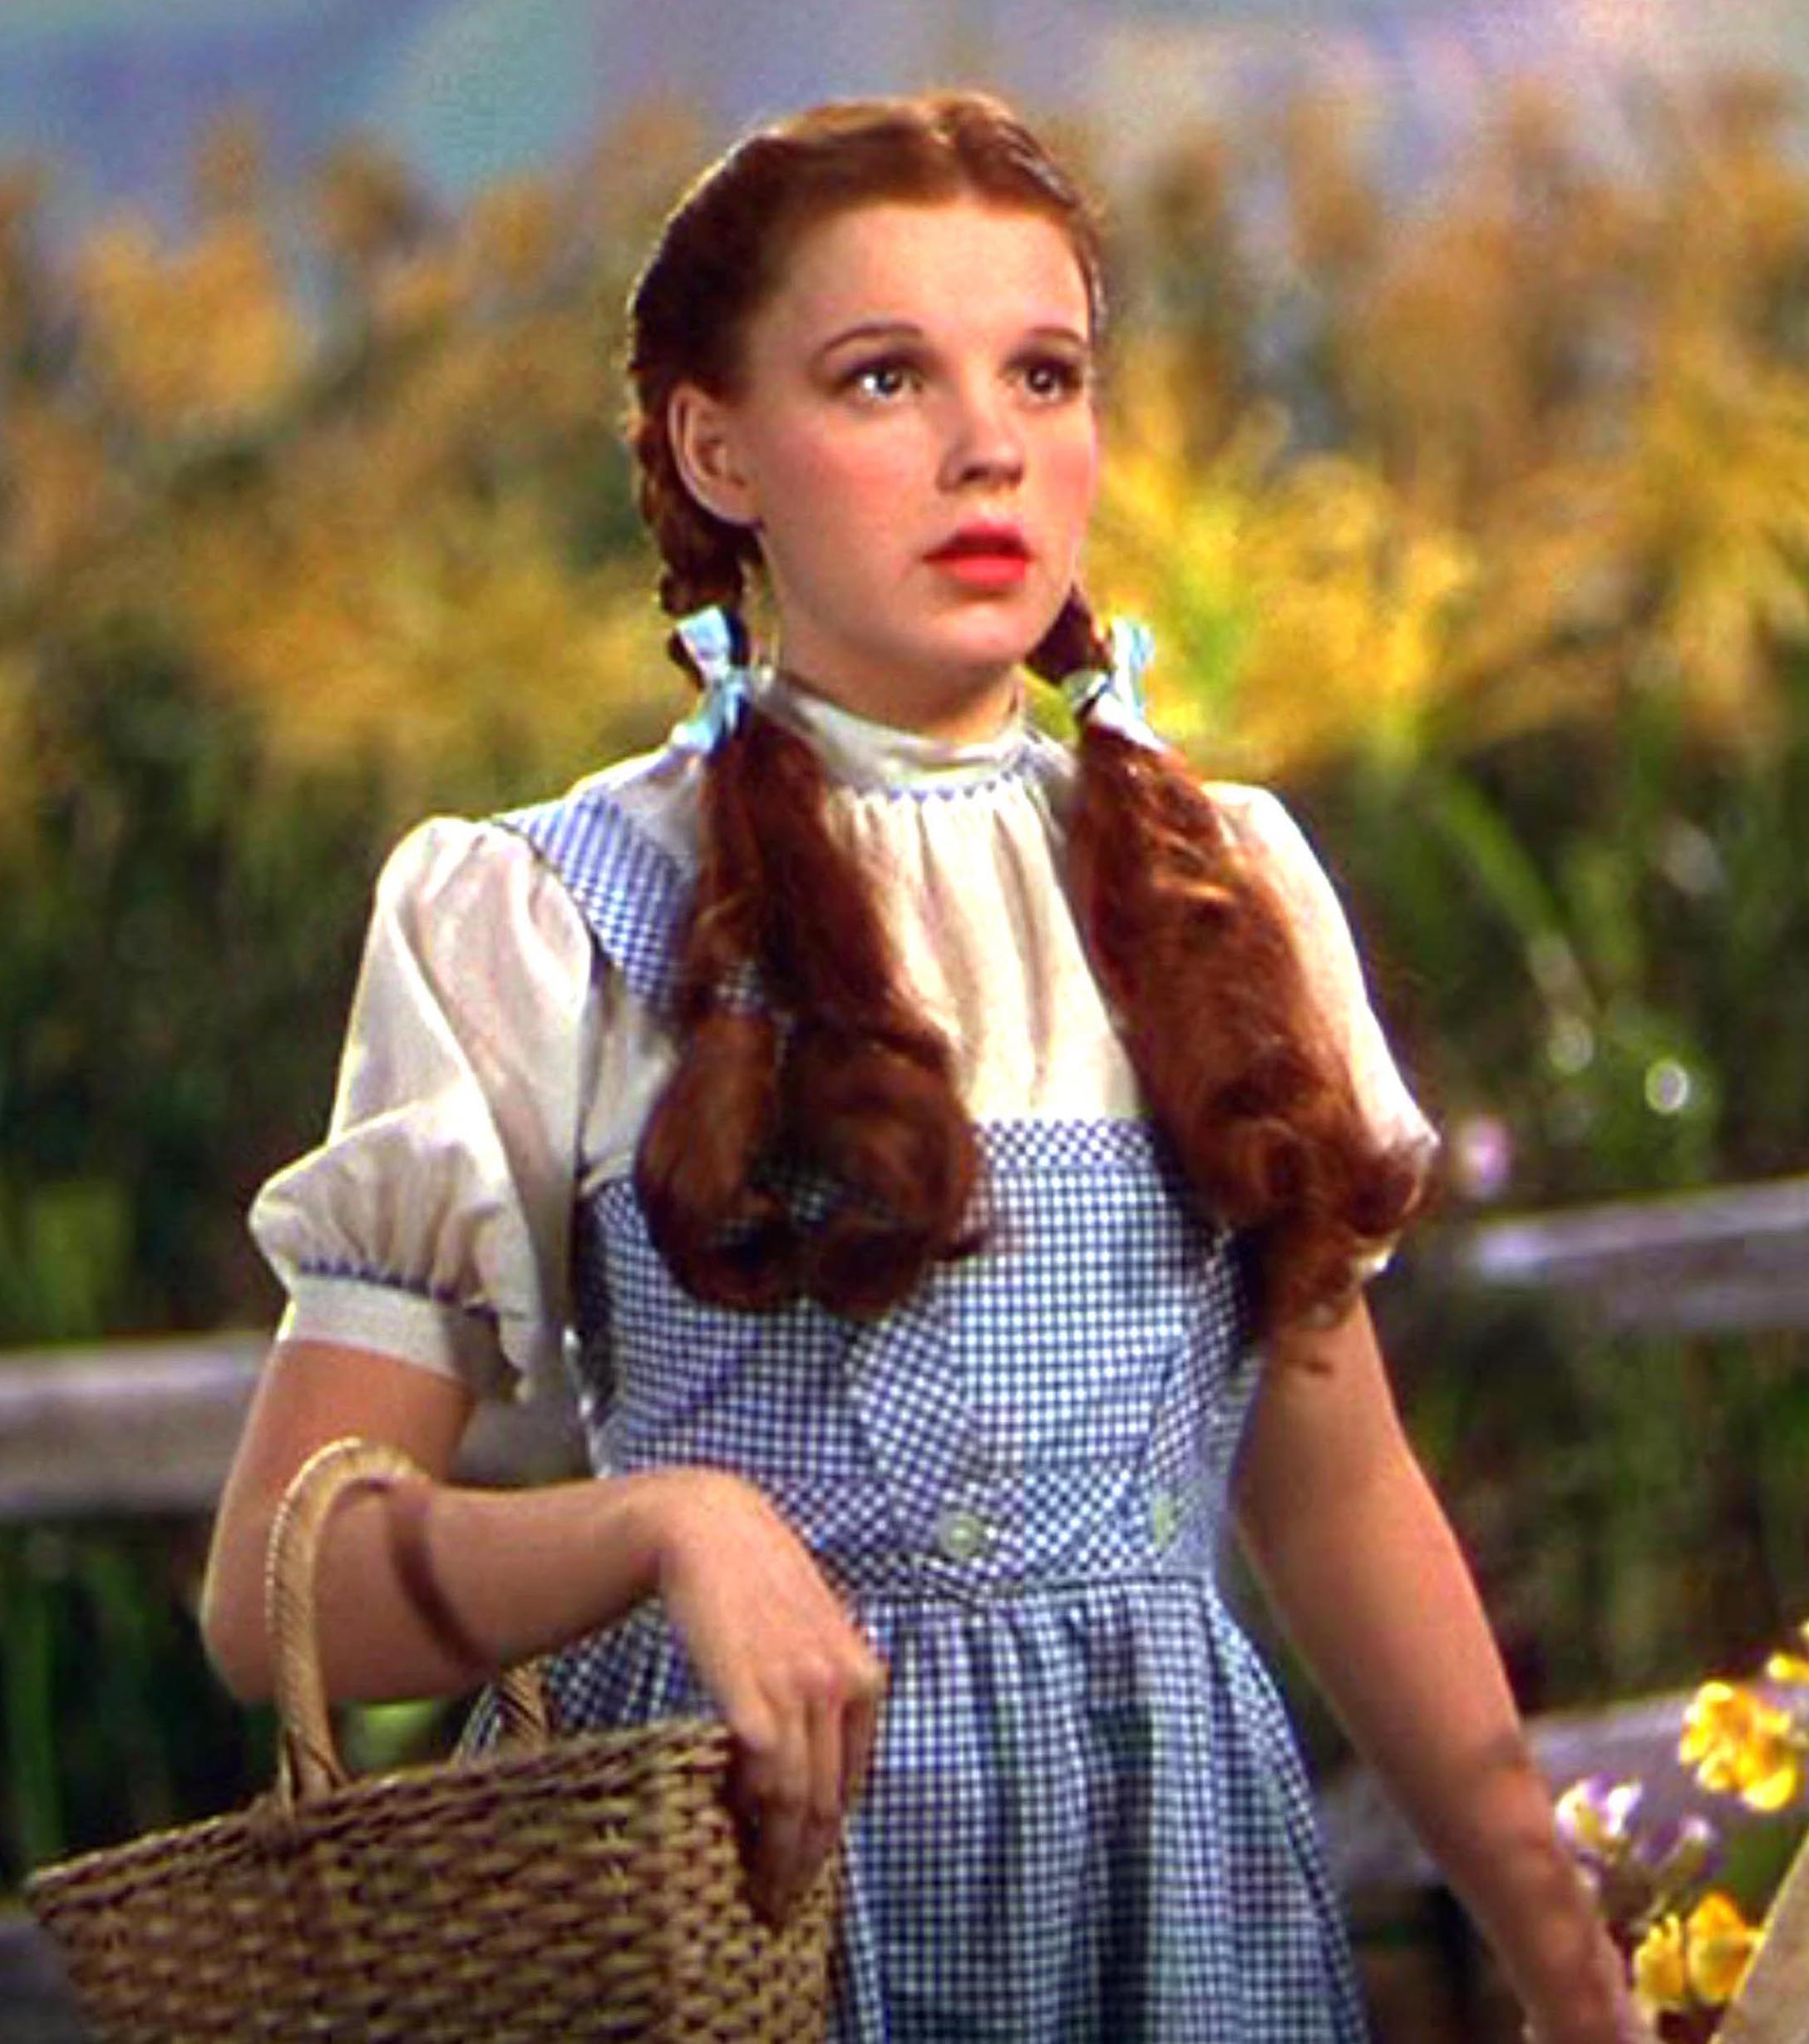 190911180528 01 style remember when judy garland dorothy 20 Movie Urban Legends (That Aren't Actually True)